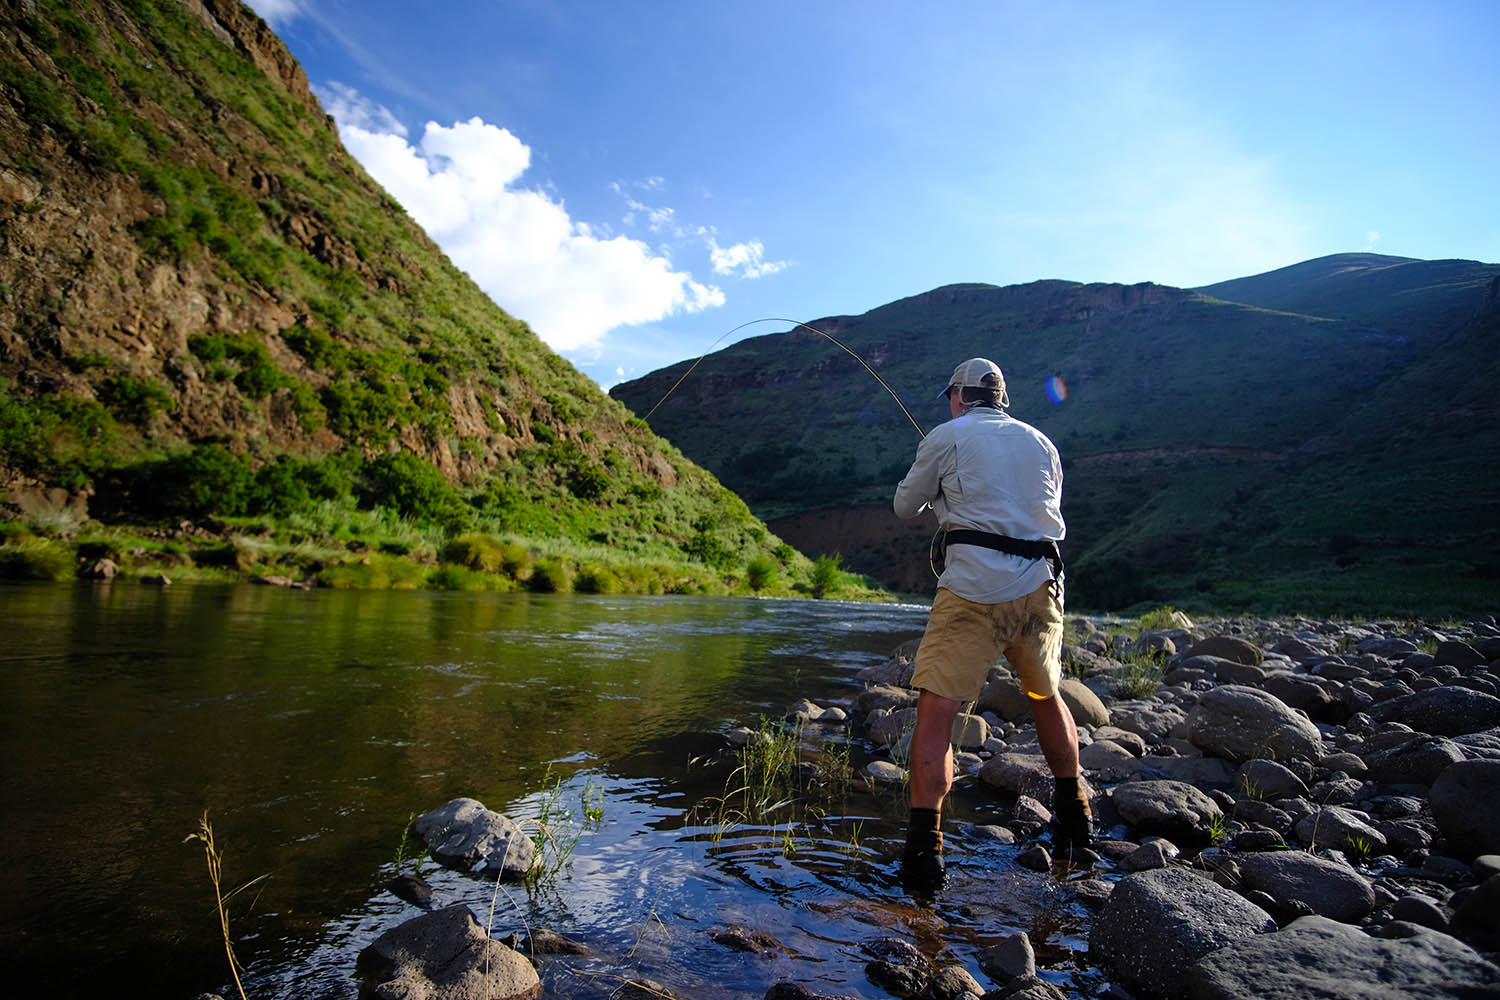 lesotho-makhangoa-community-camp-tours-tourette-fishing-fly-fishing